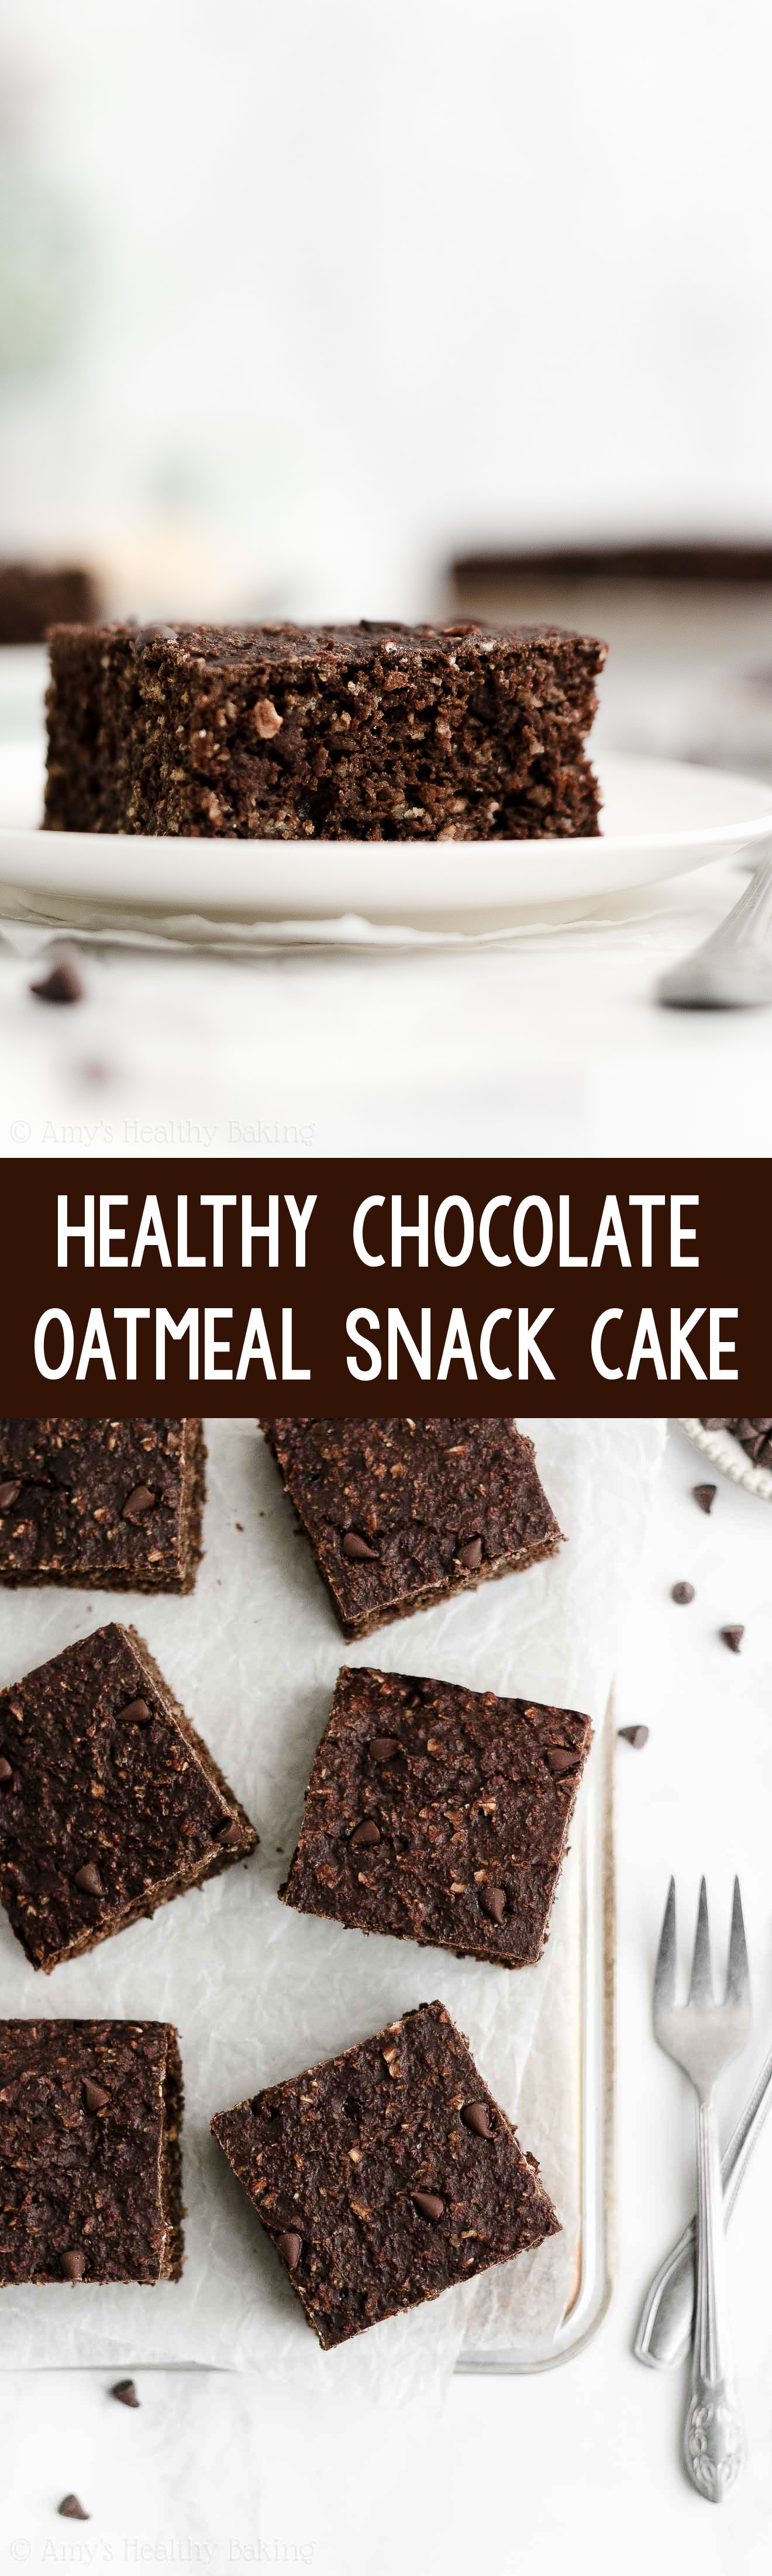 ULTIMATE Healthy Greek Yogurt Moist Double Chocolate Breakfast & Snack Cake